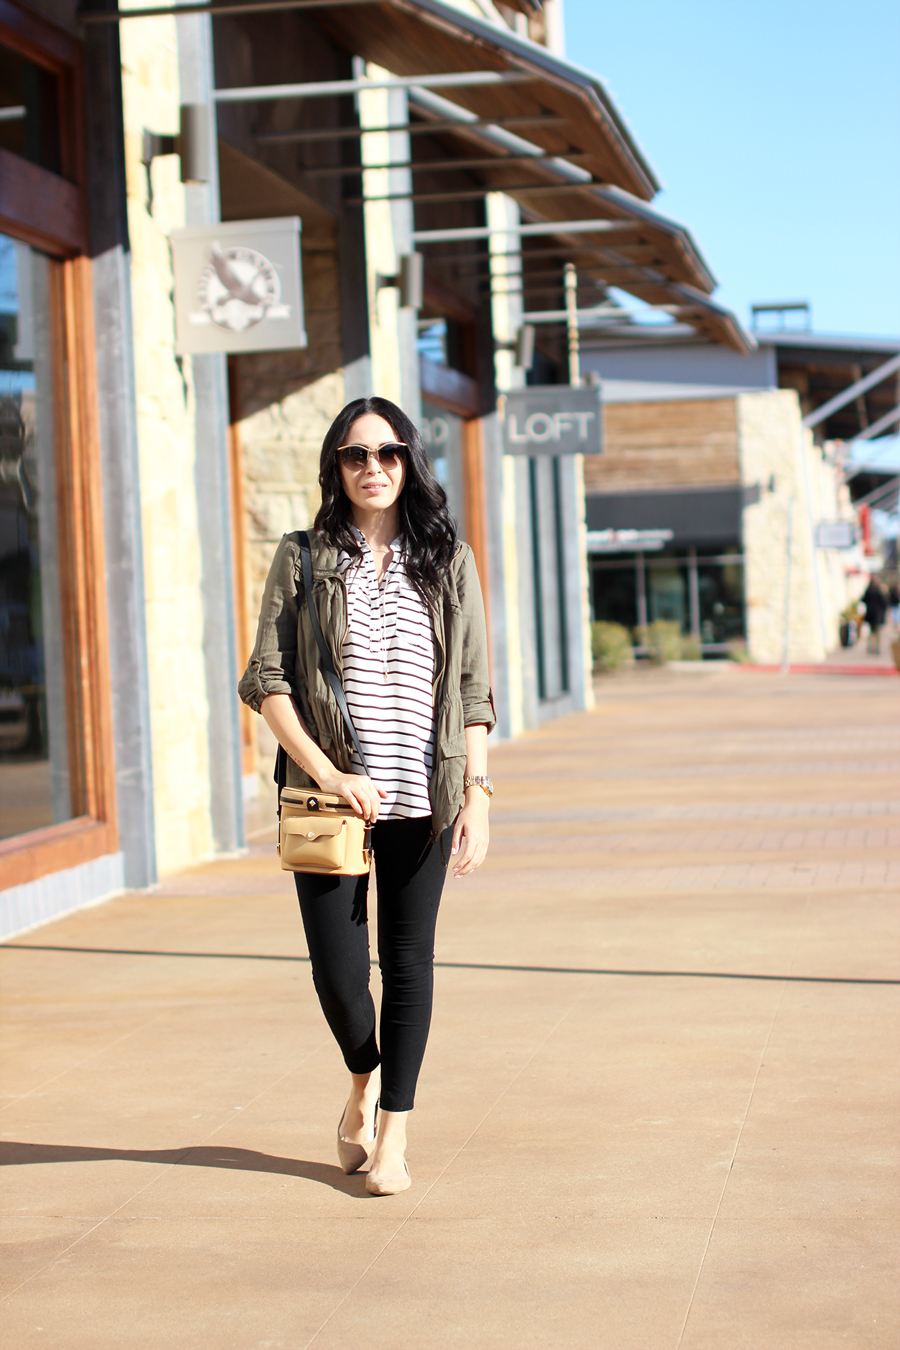 FTT-CARGO-JACKET-SHOPPING-HILL-COUNTRY-GALLERIA-SKINNY-JEANS-STRIPES-4